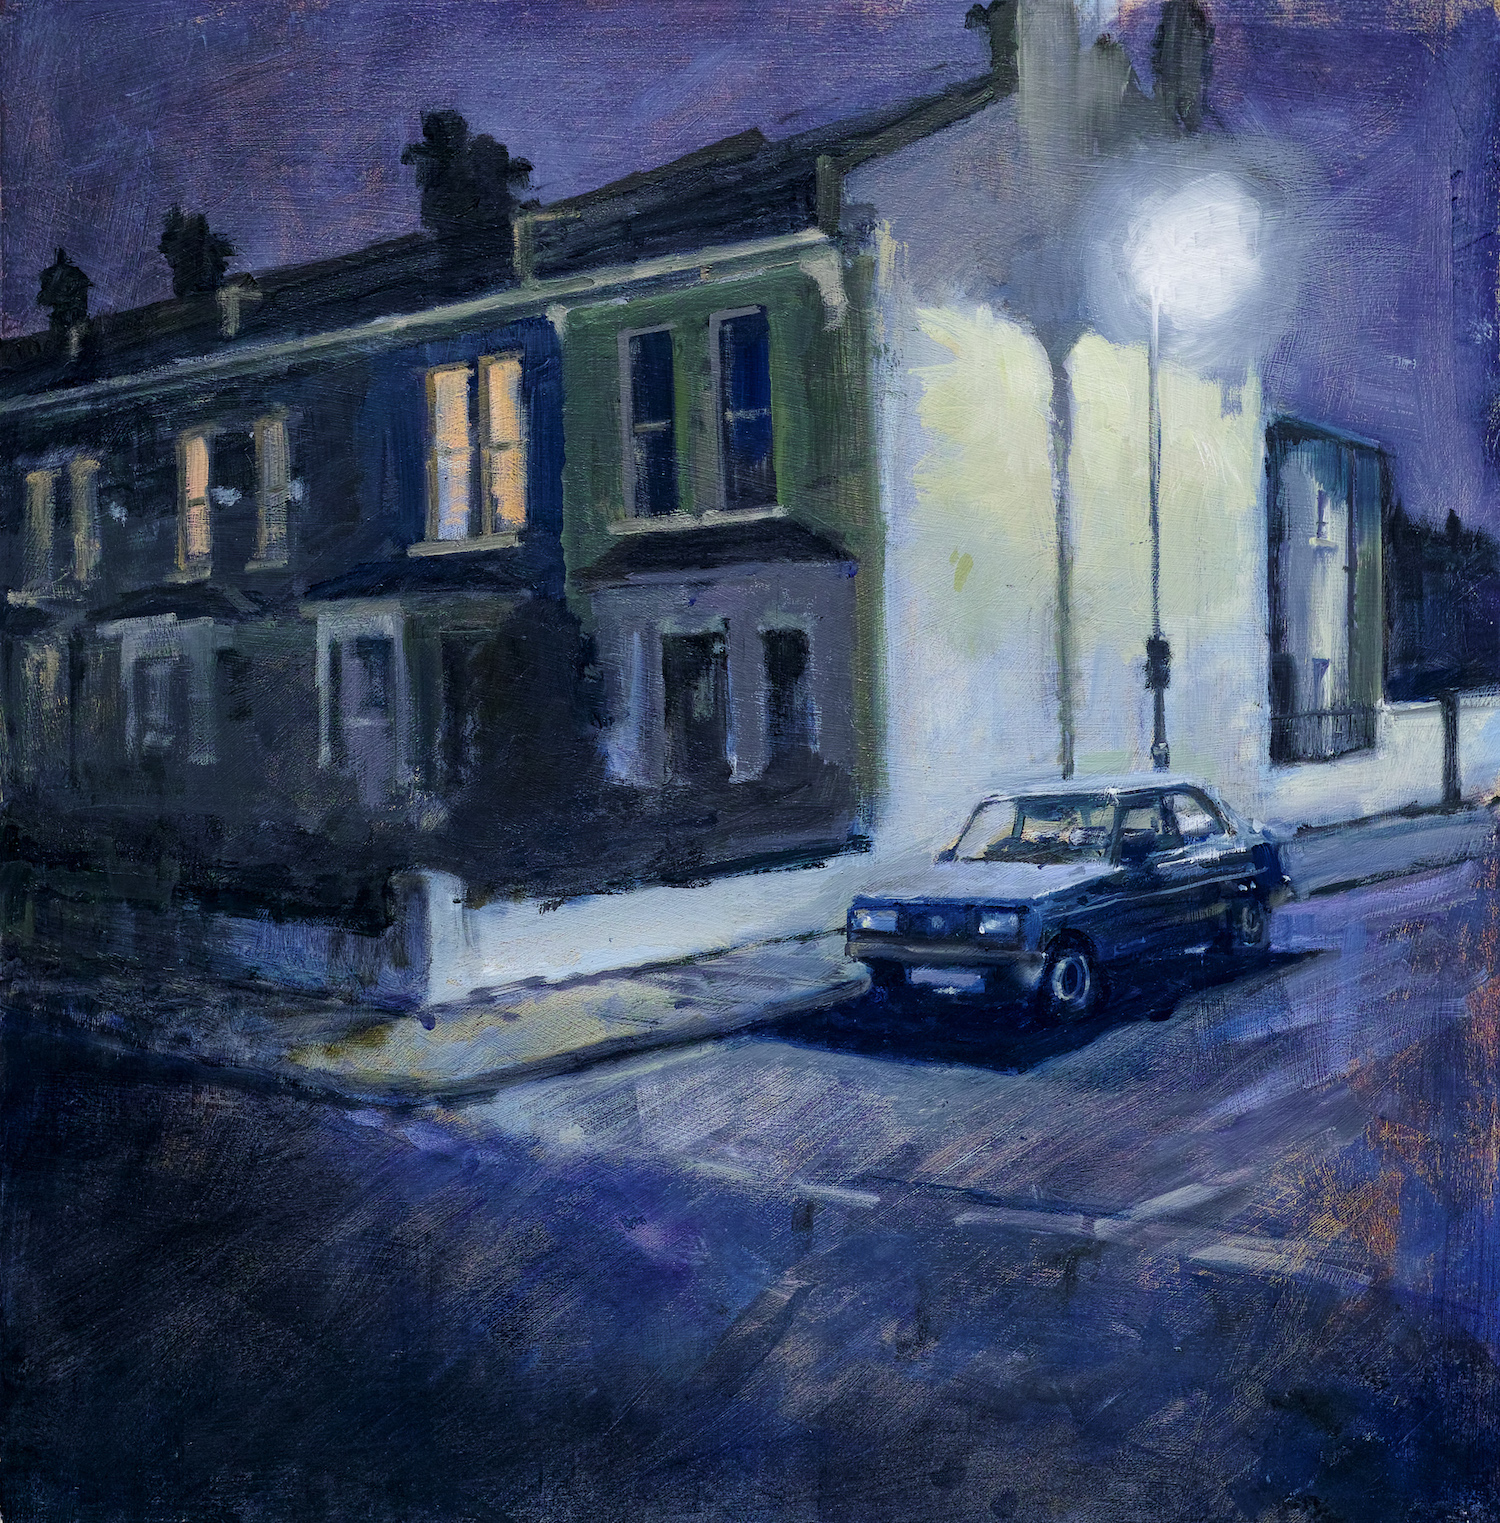 'Wally's 131 nocturne', Tim Goffe, Oil on panel, 51 x 51 cm